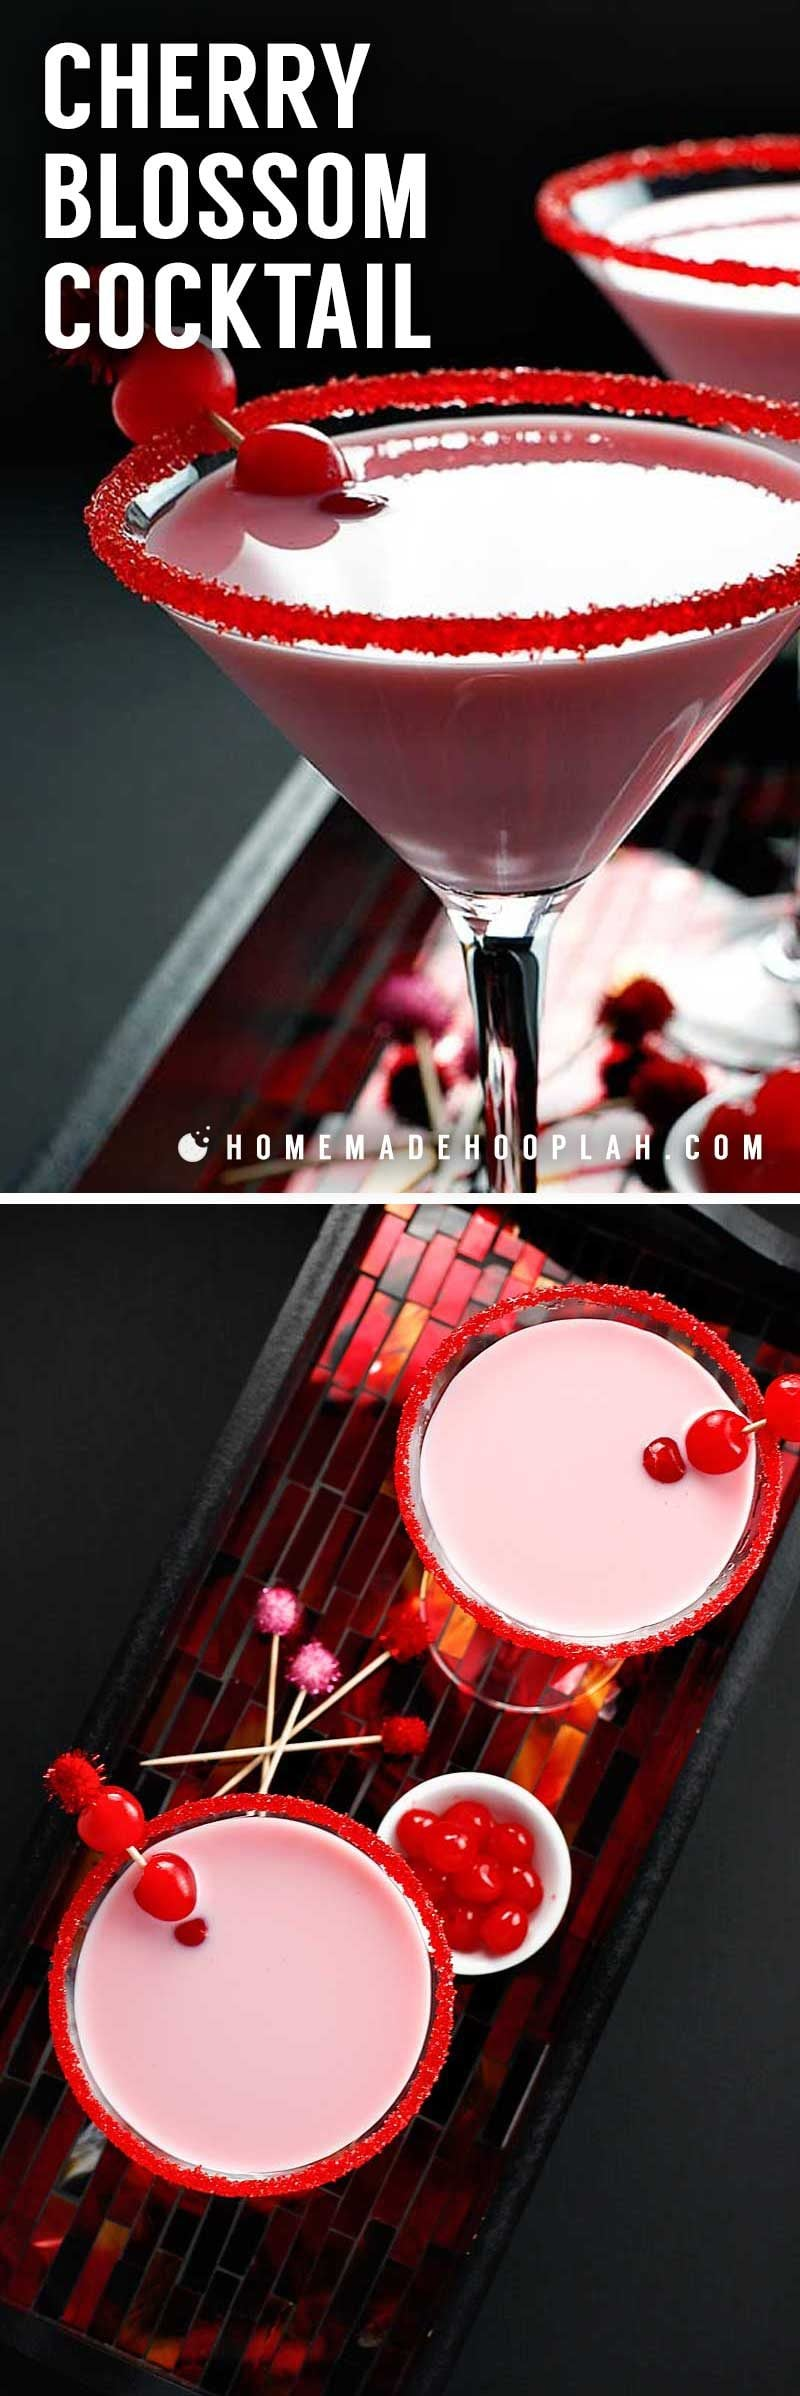 A great pink martini recipe for a party.